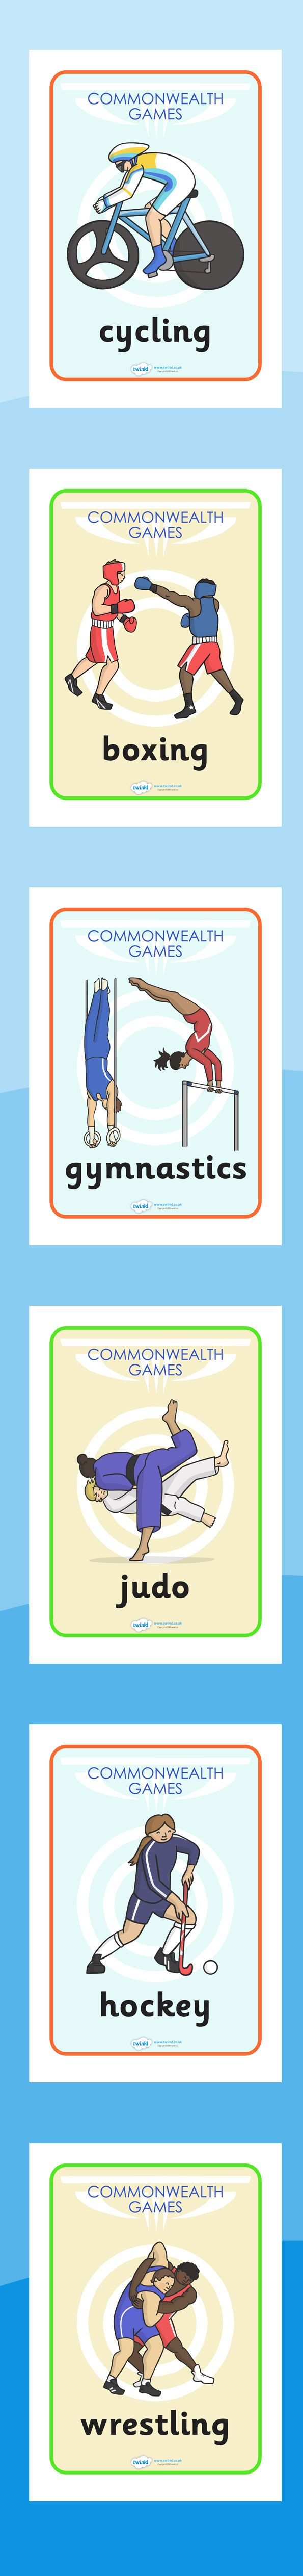 The Commonwealth Games- Display Posters